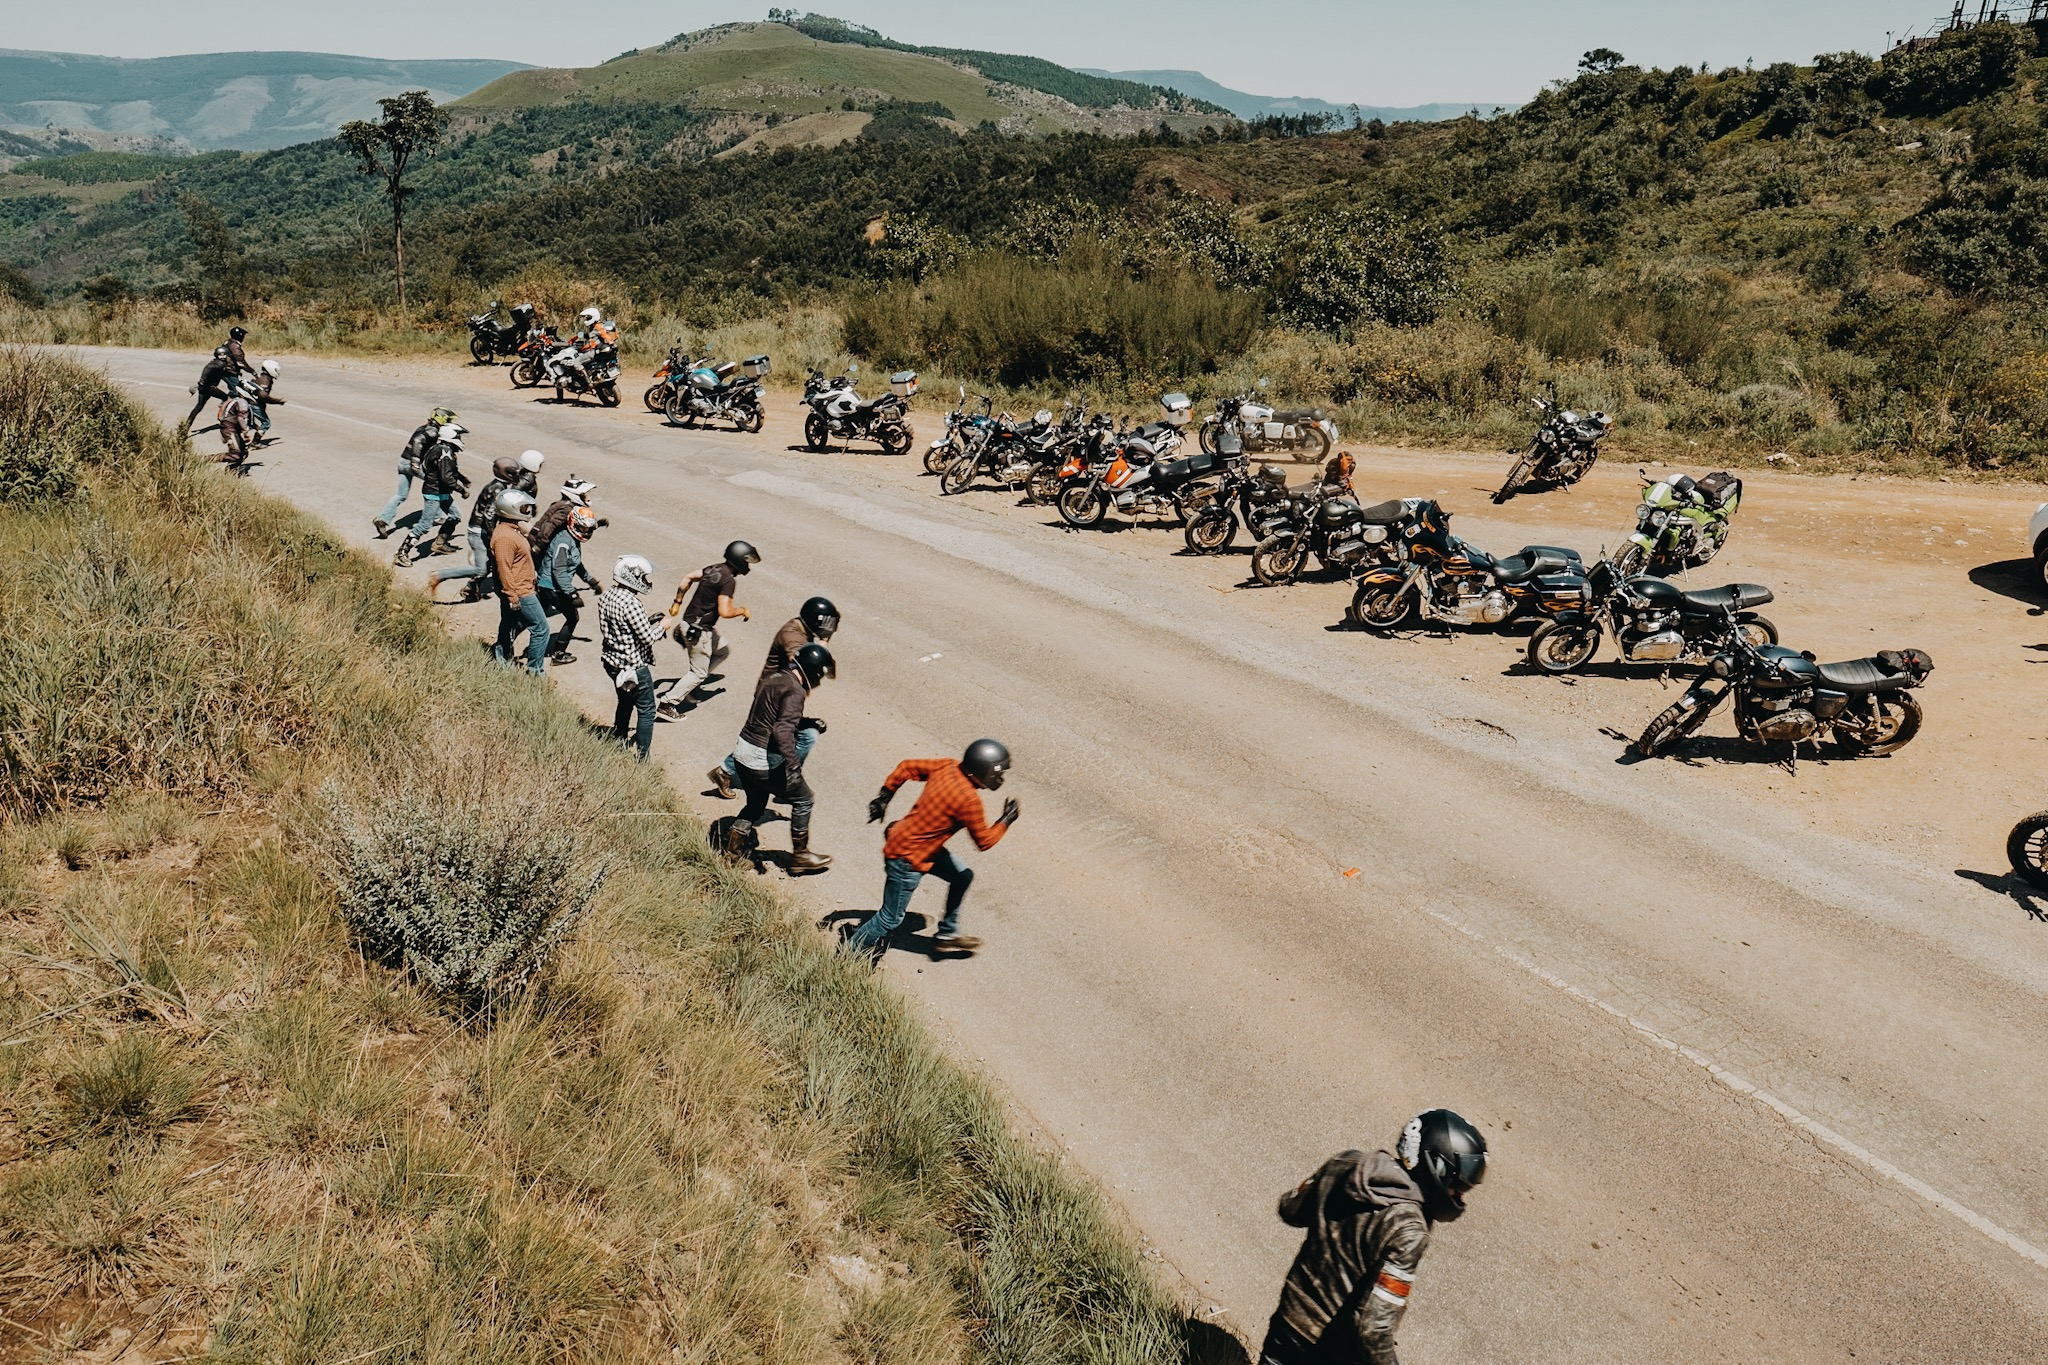 Sabie Bubble Run - South Africa's first and only traditional motorcycle run